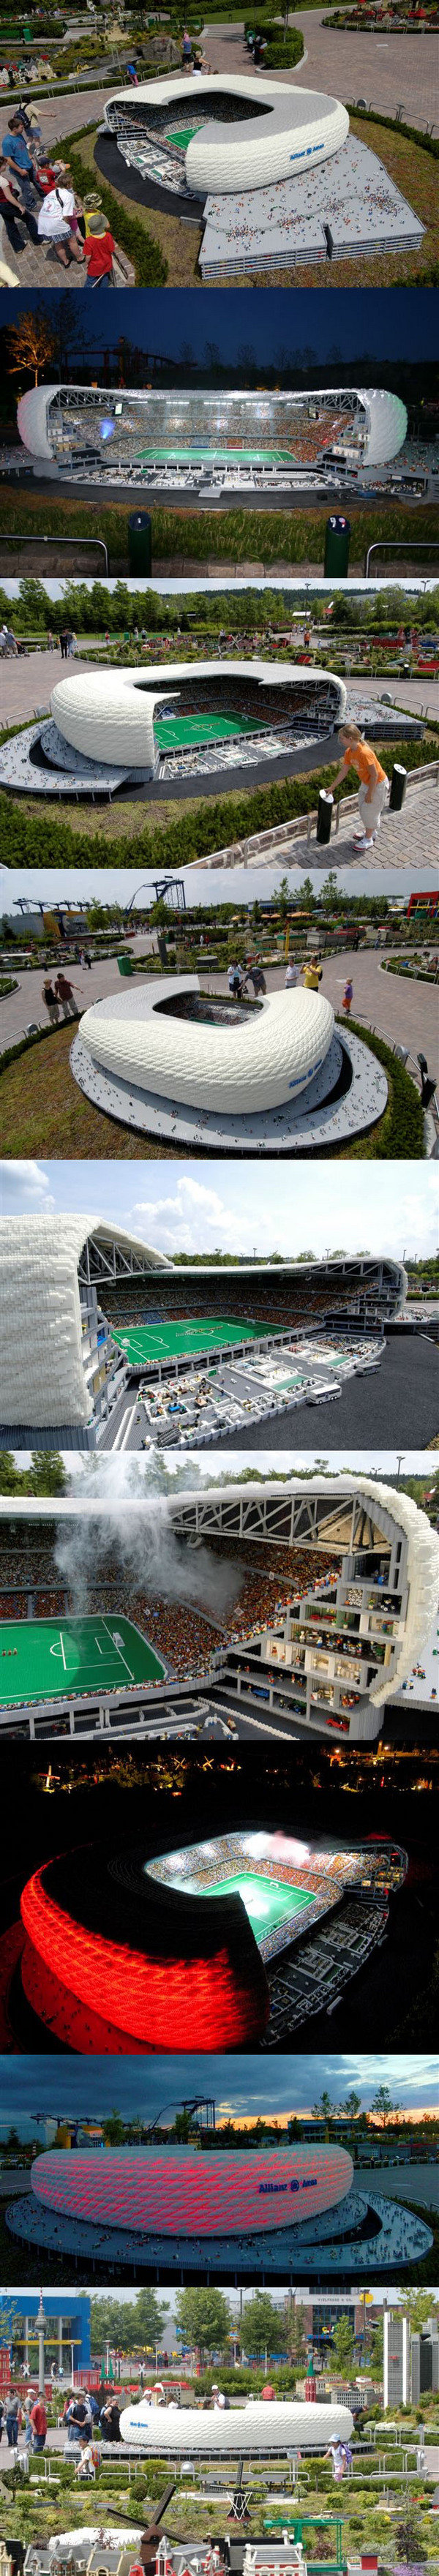 legostadium - ever wanted to see what 1 billion lego's would make you?